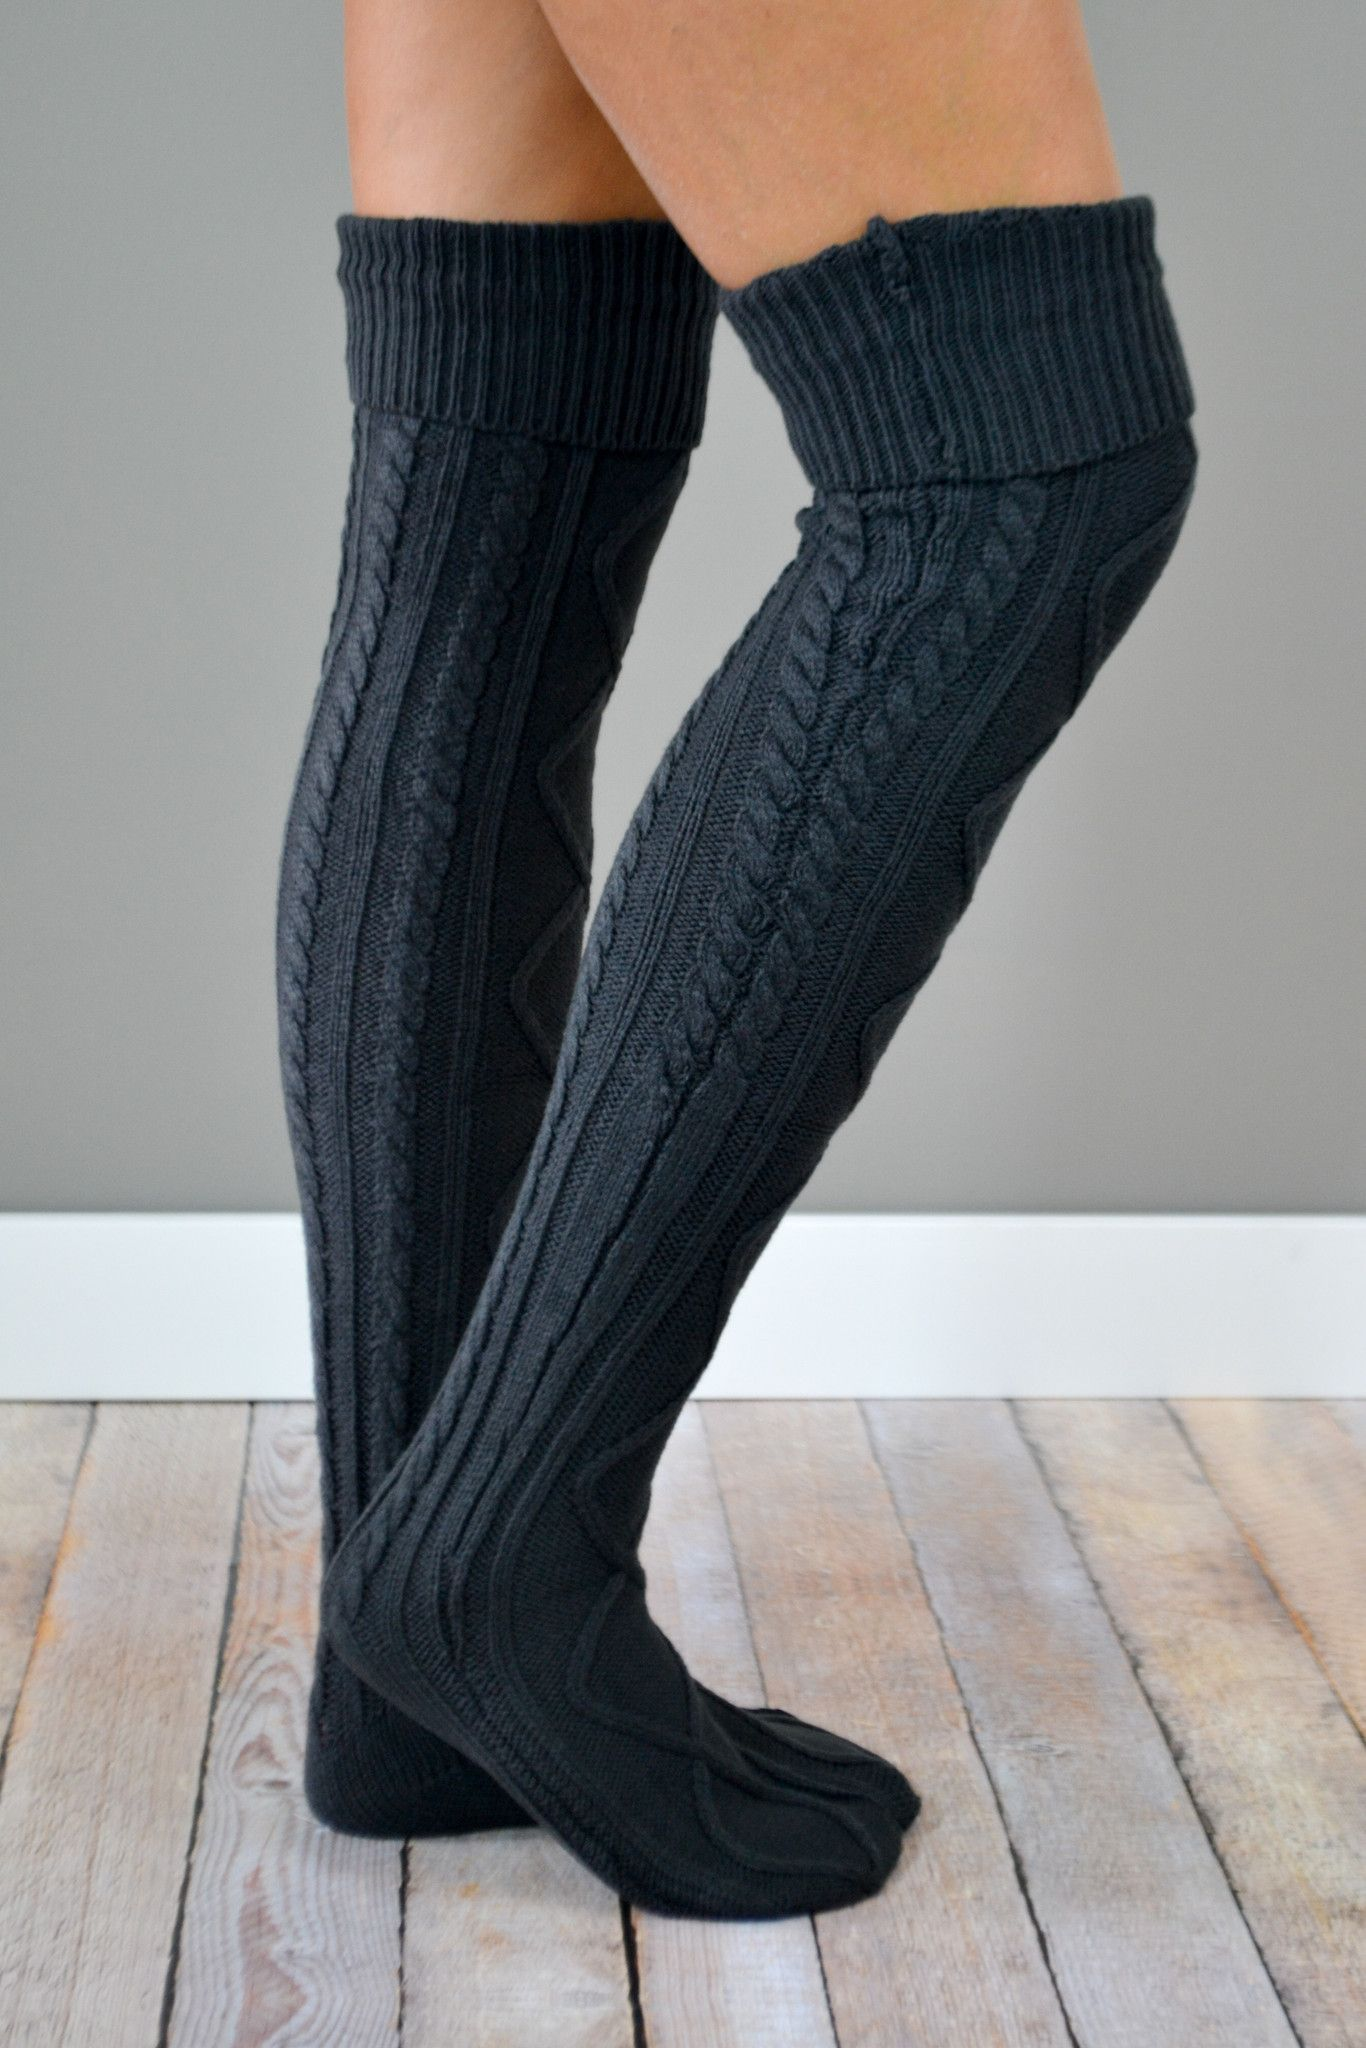 Charcoal thick cable knit boot socks fast free shipping charcoal diamond cable knit boot socks bankloansurffo Choice Image